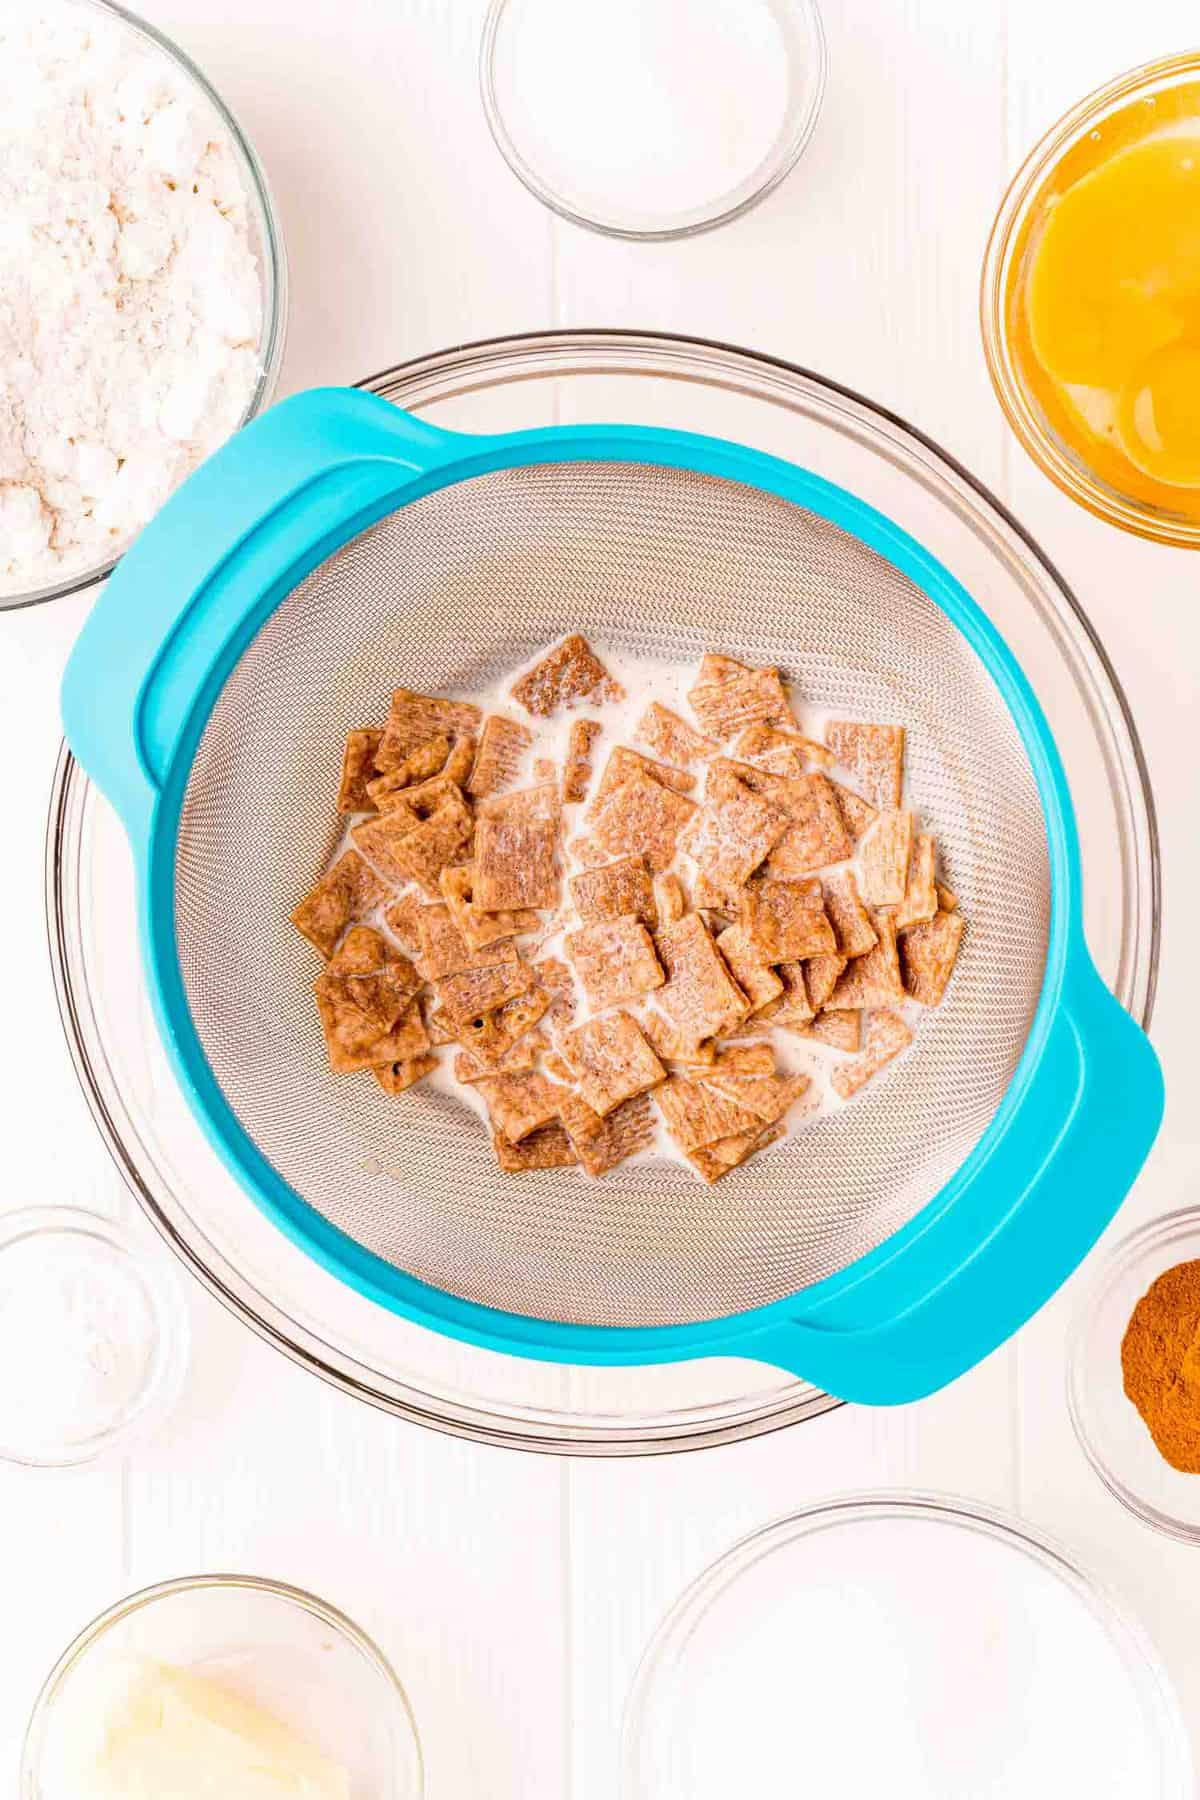 Cereal in a fine mesh strainer.